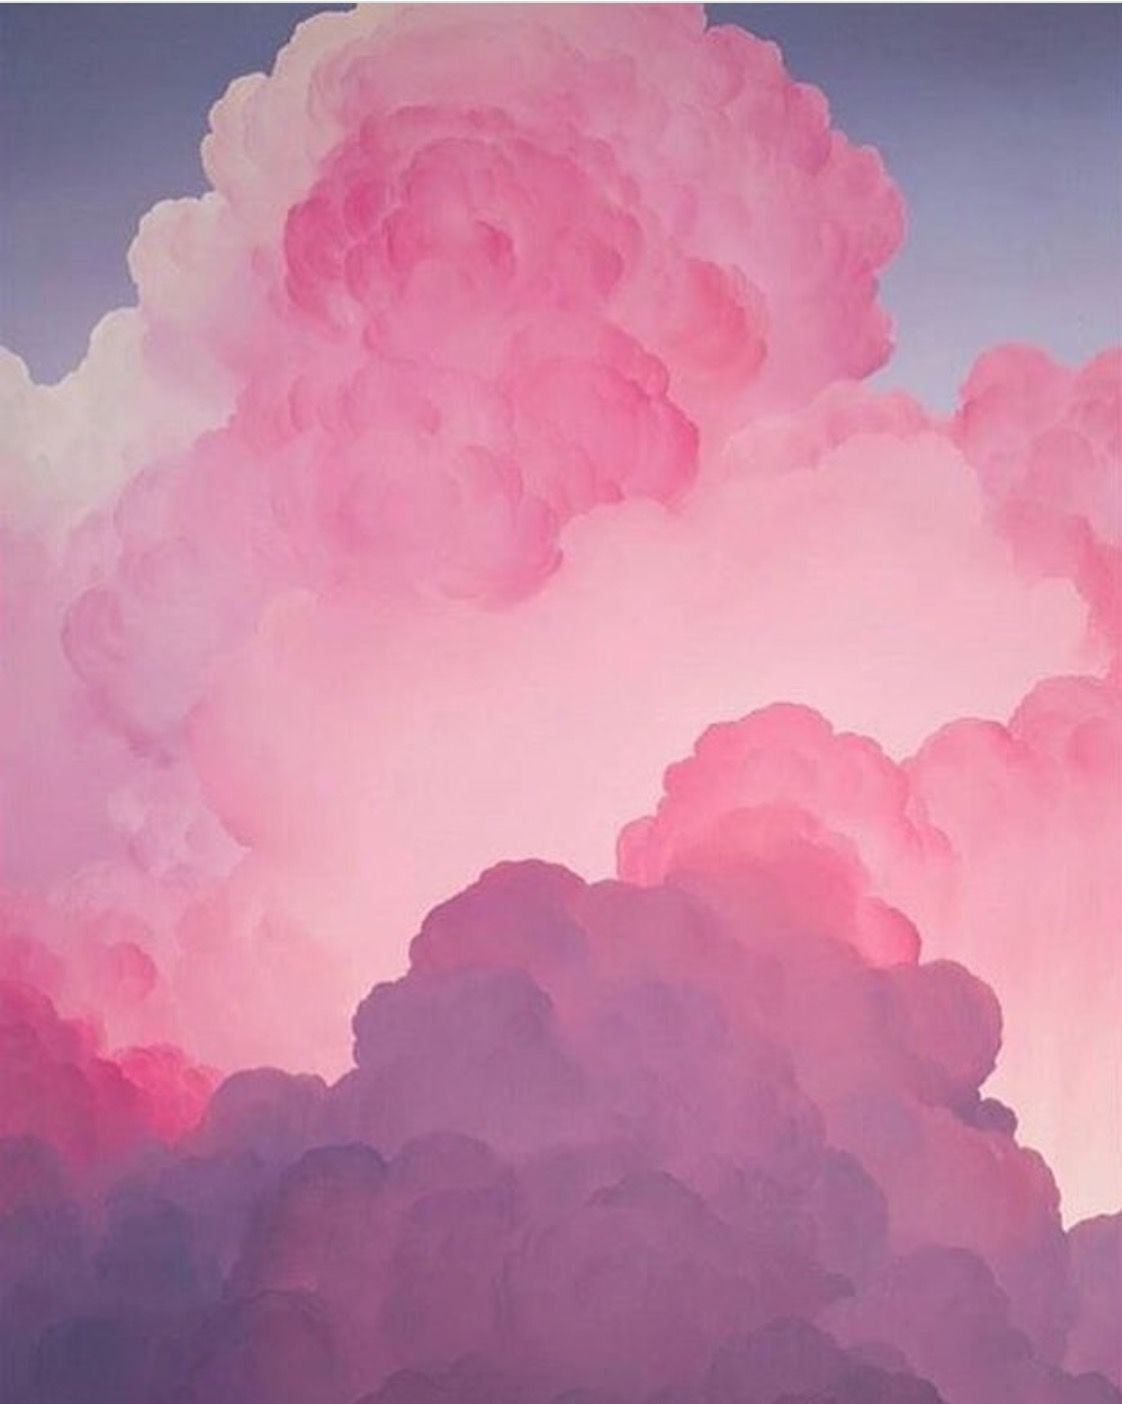 Iphone Wallpaper Aesthetic Pink Clouds